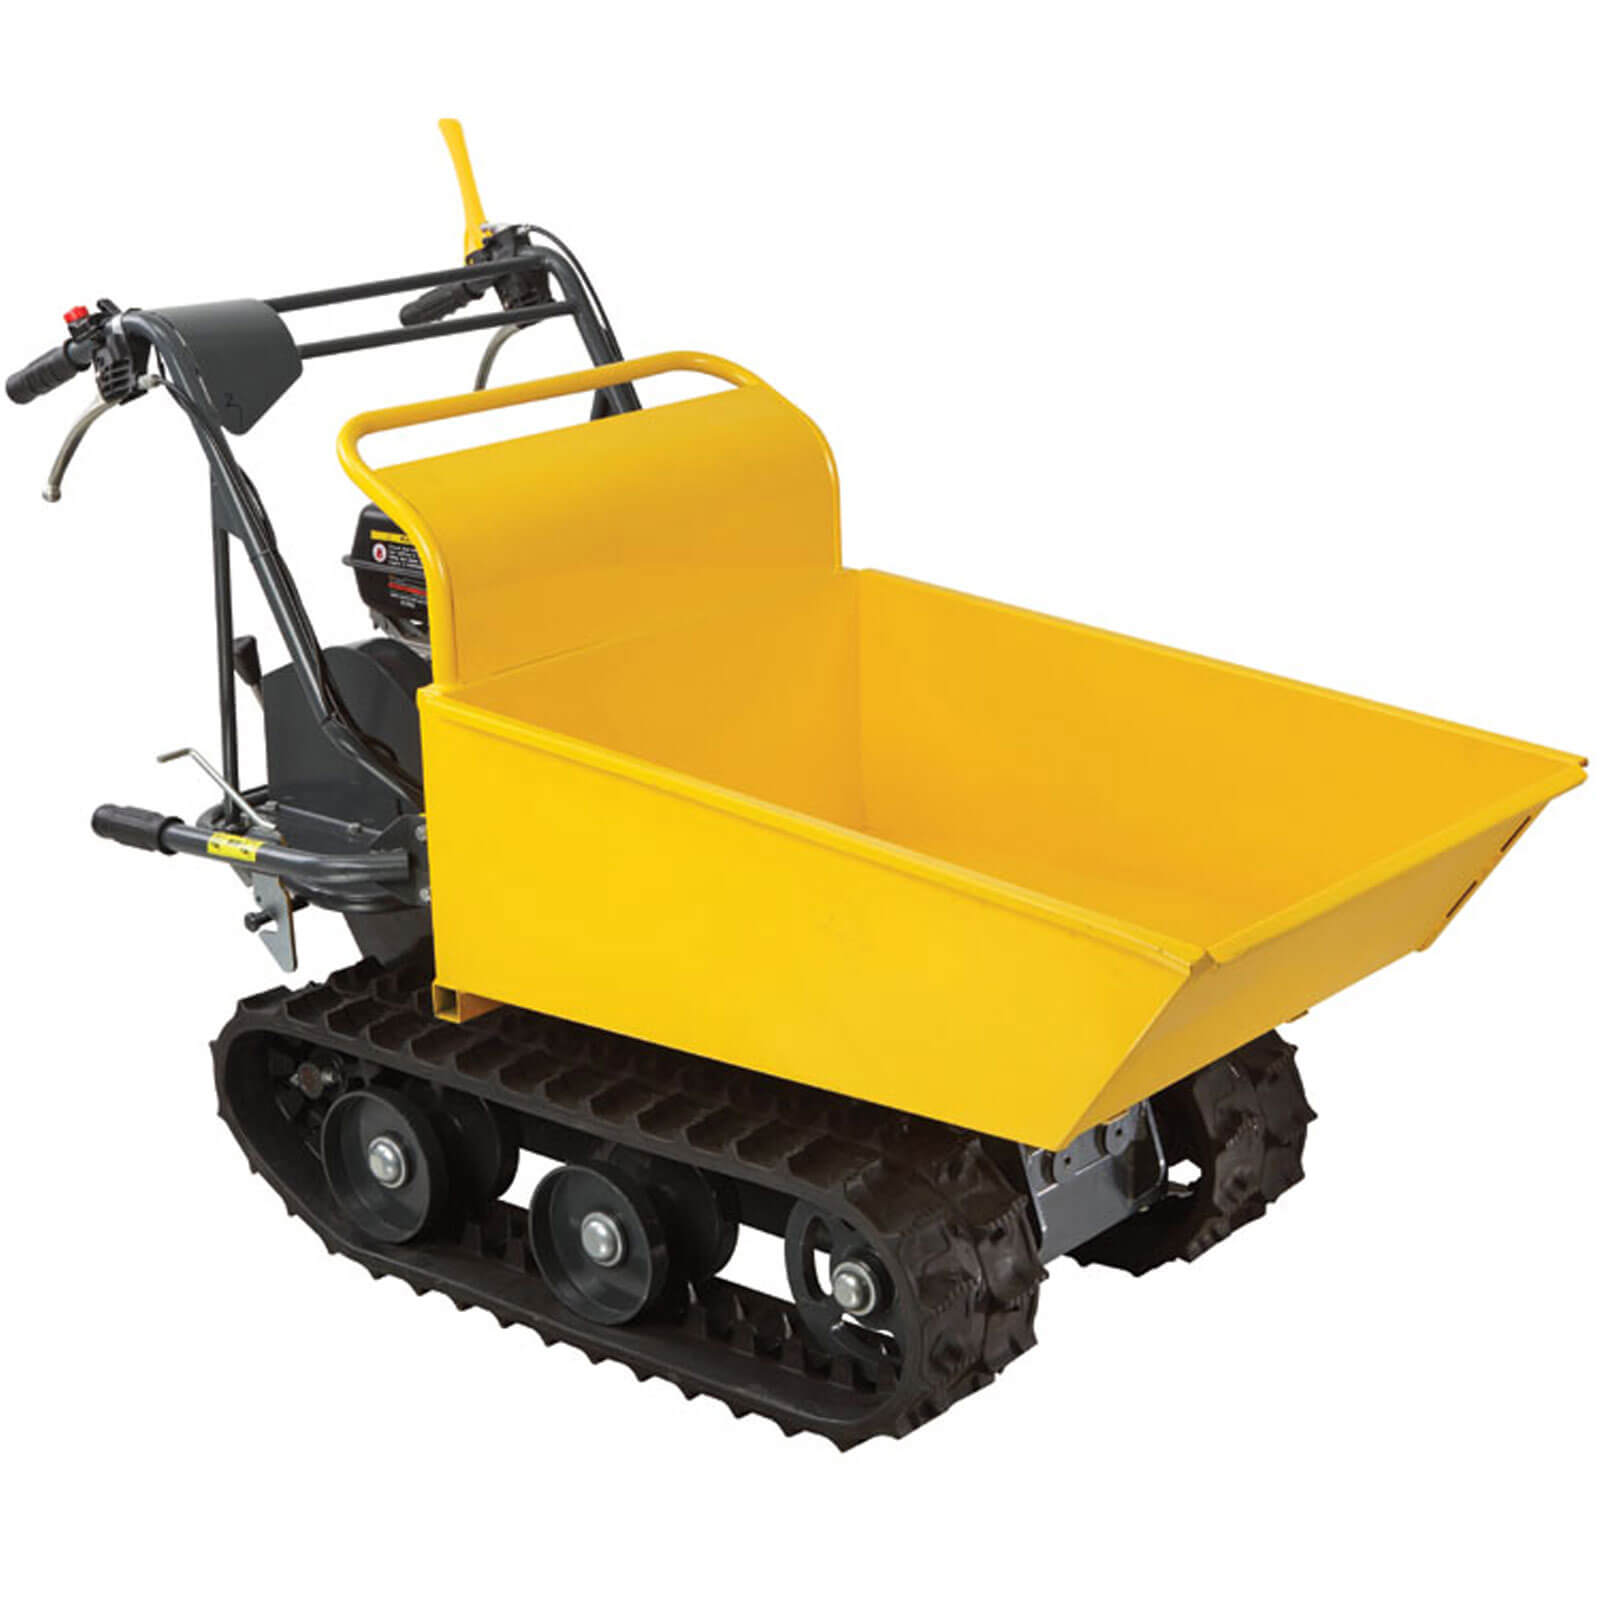 Handy LC09715 Petrol Mini Transporter 300kg Load Capacity with 900 Series Briggs Stratton Engine